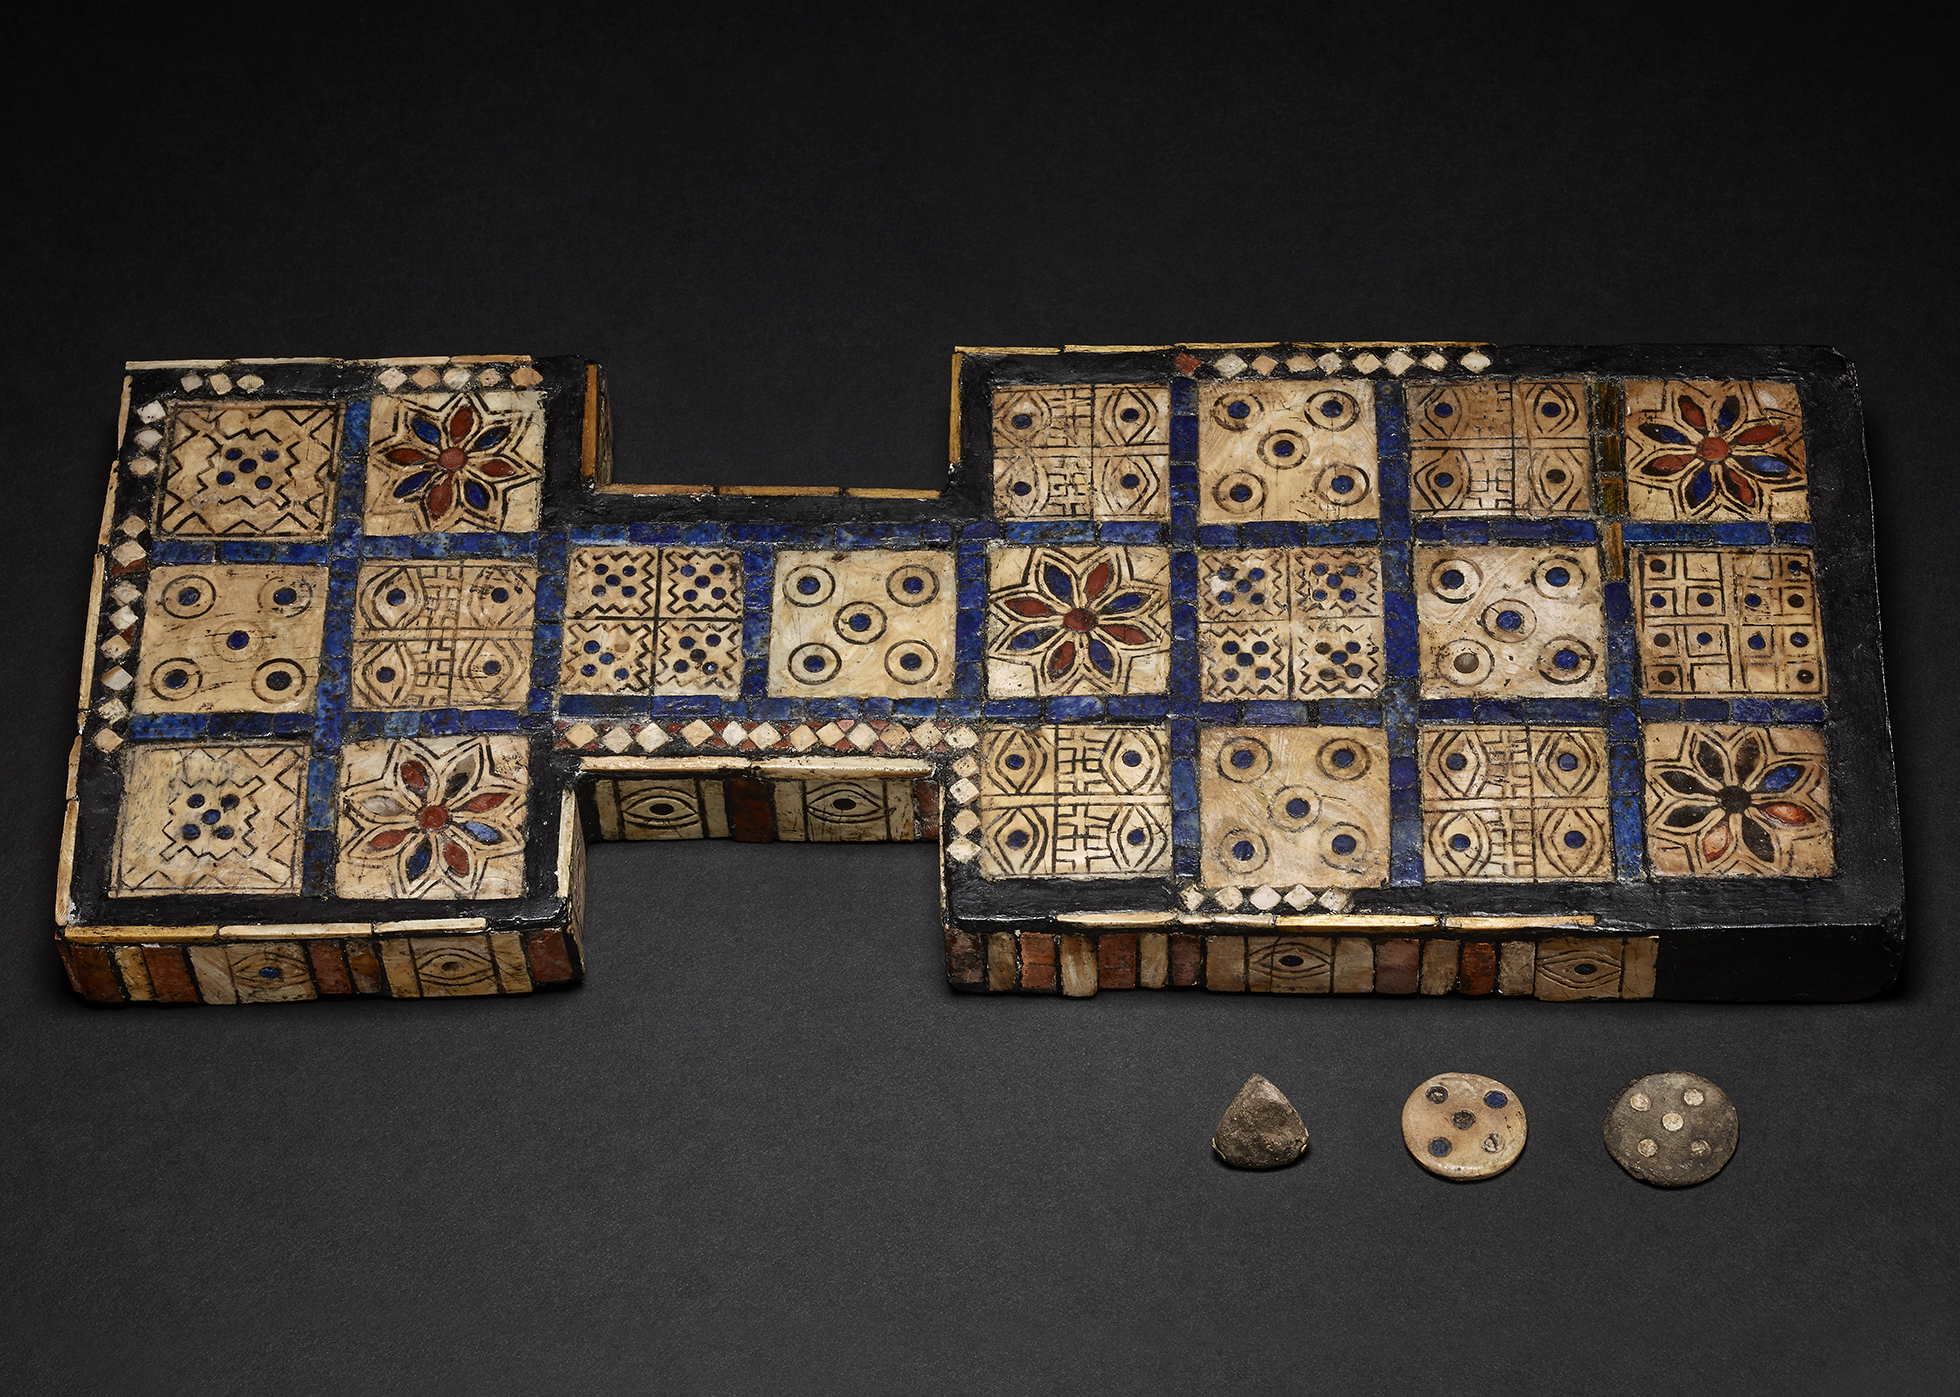 The Royal Game of Ur photographed from above, inlaid with wood and shell, coloured with red and blue patterns.